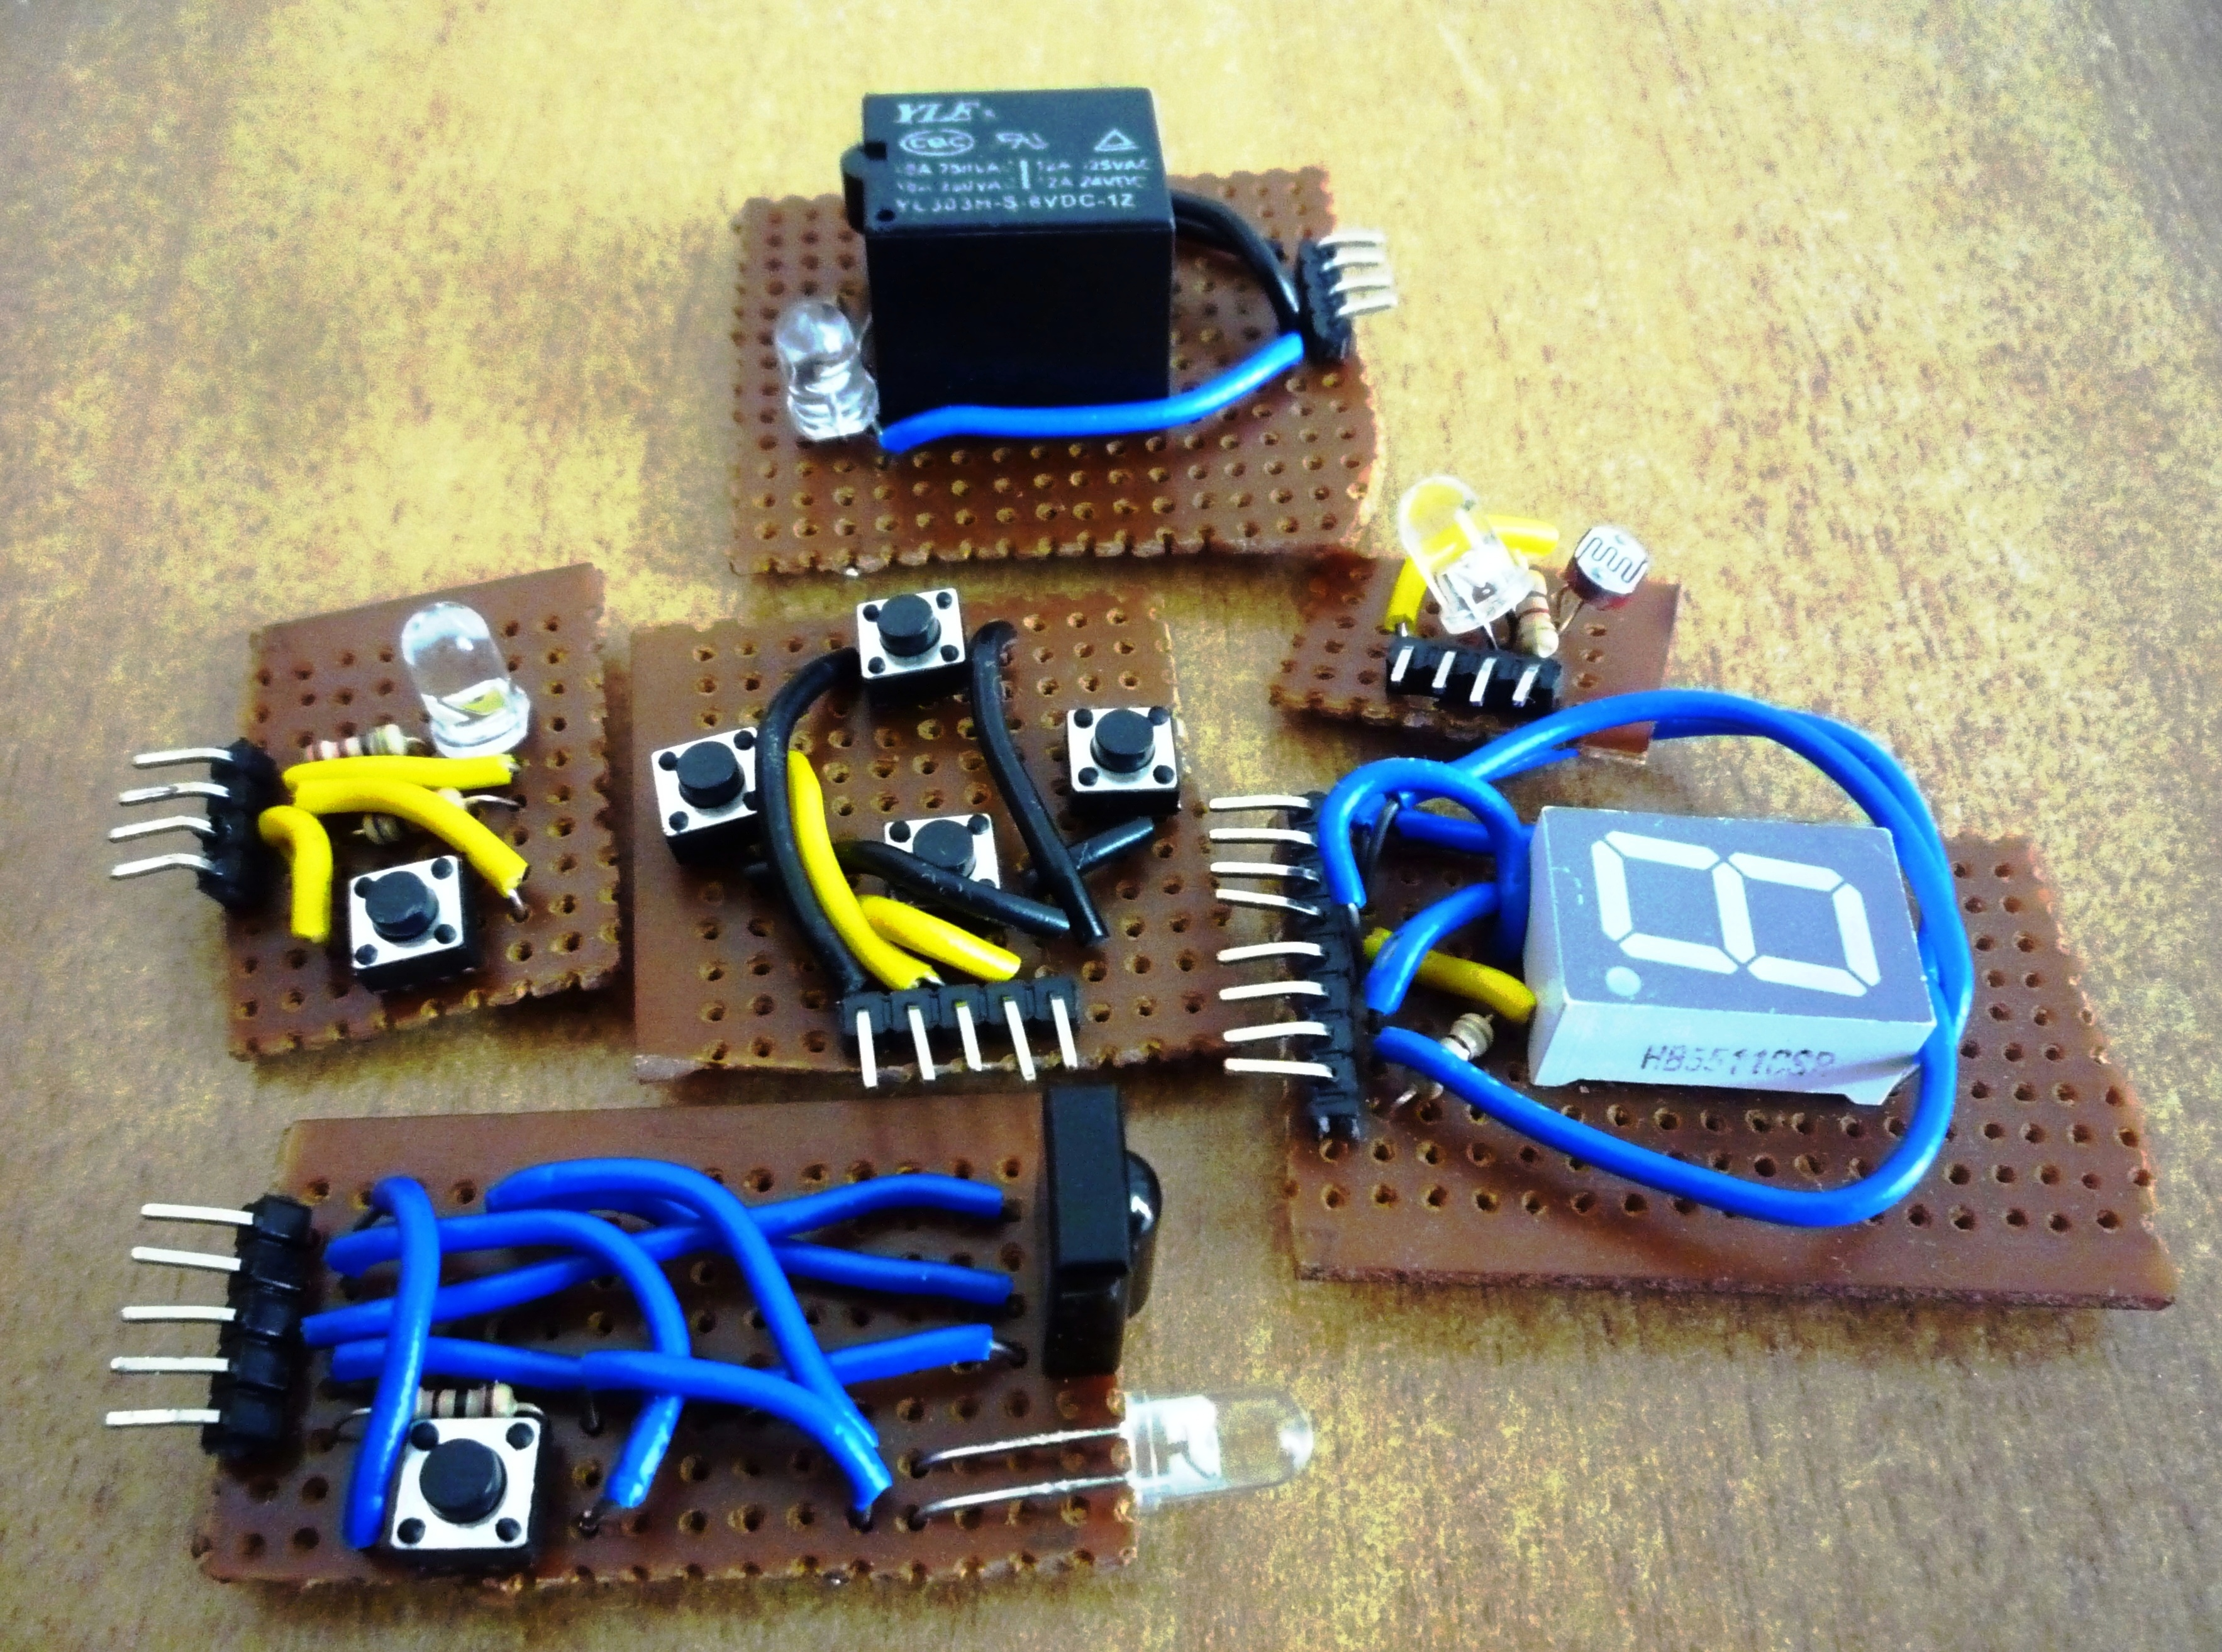 Picture of Arduino Mini Shields Construction